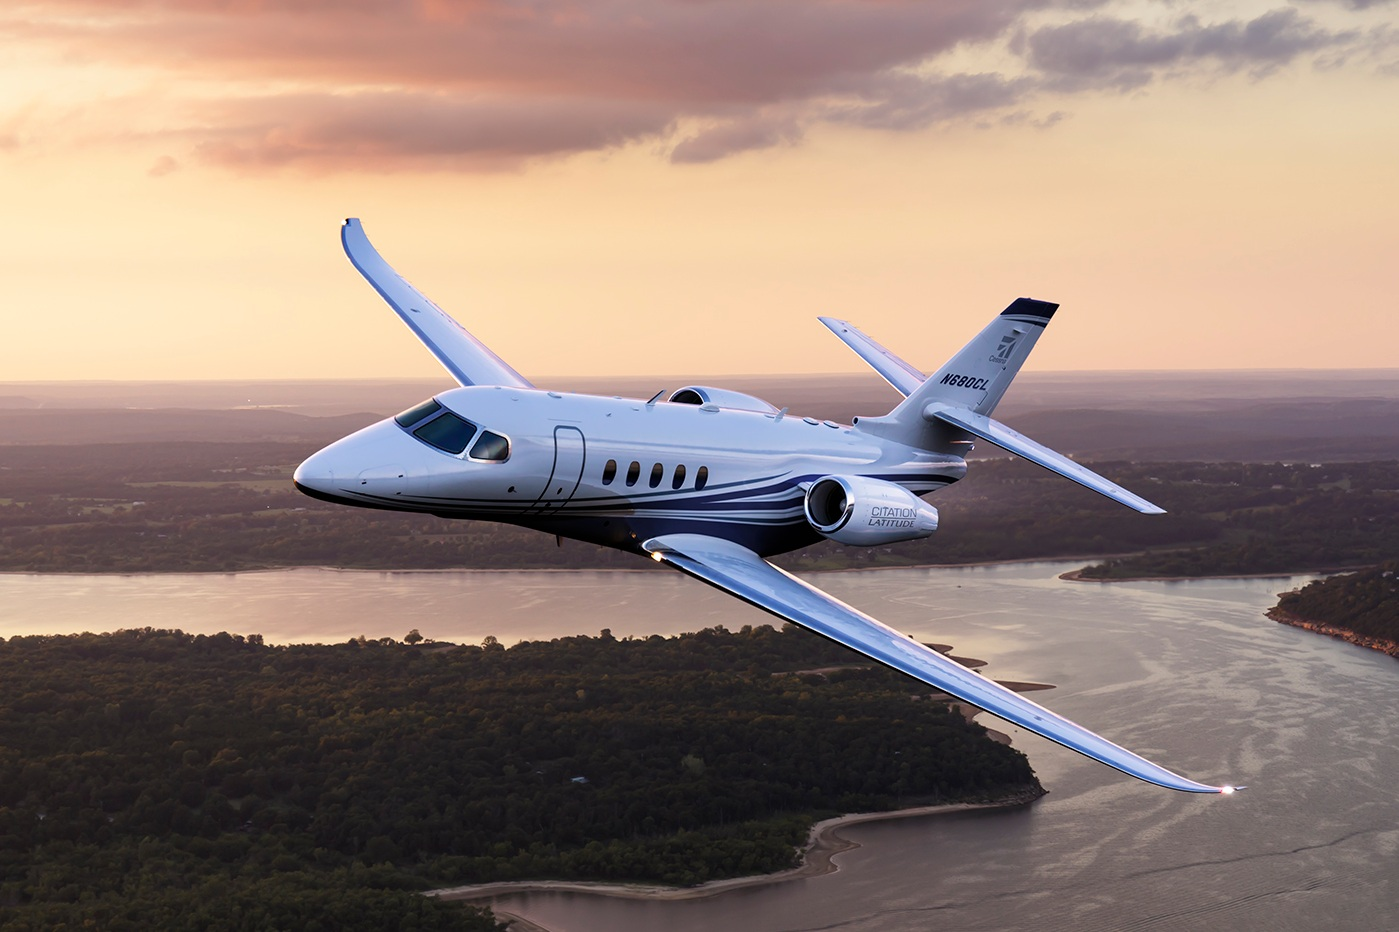 PRIVATE AIRCRAFT - From helicopters and turboprops, to private jets and executive airliners, we provide charters for leisure and executive use.